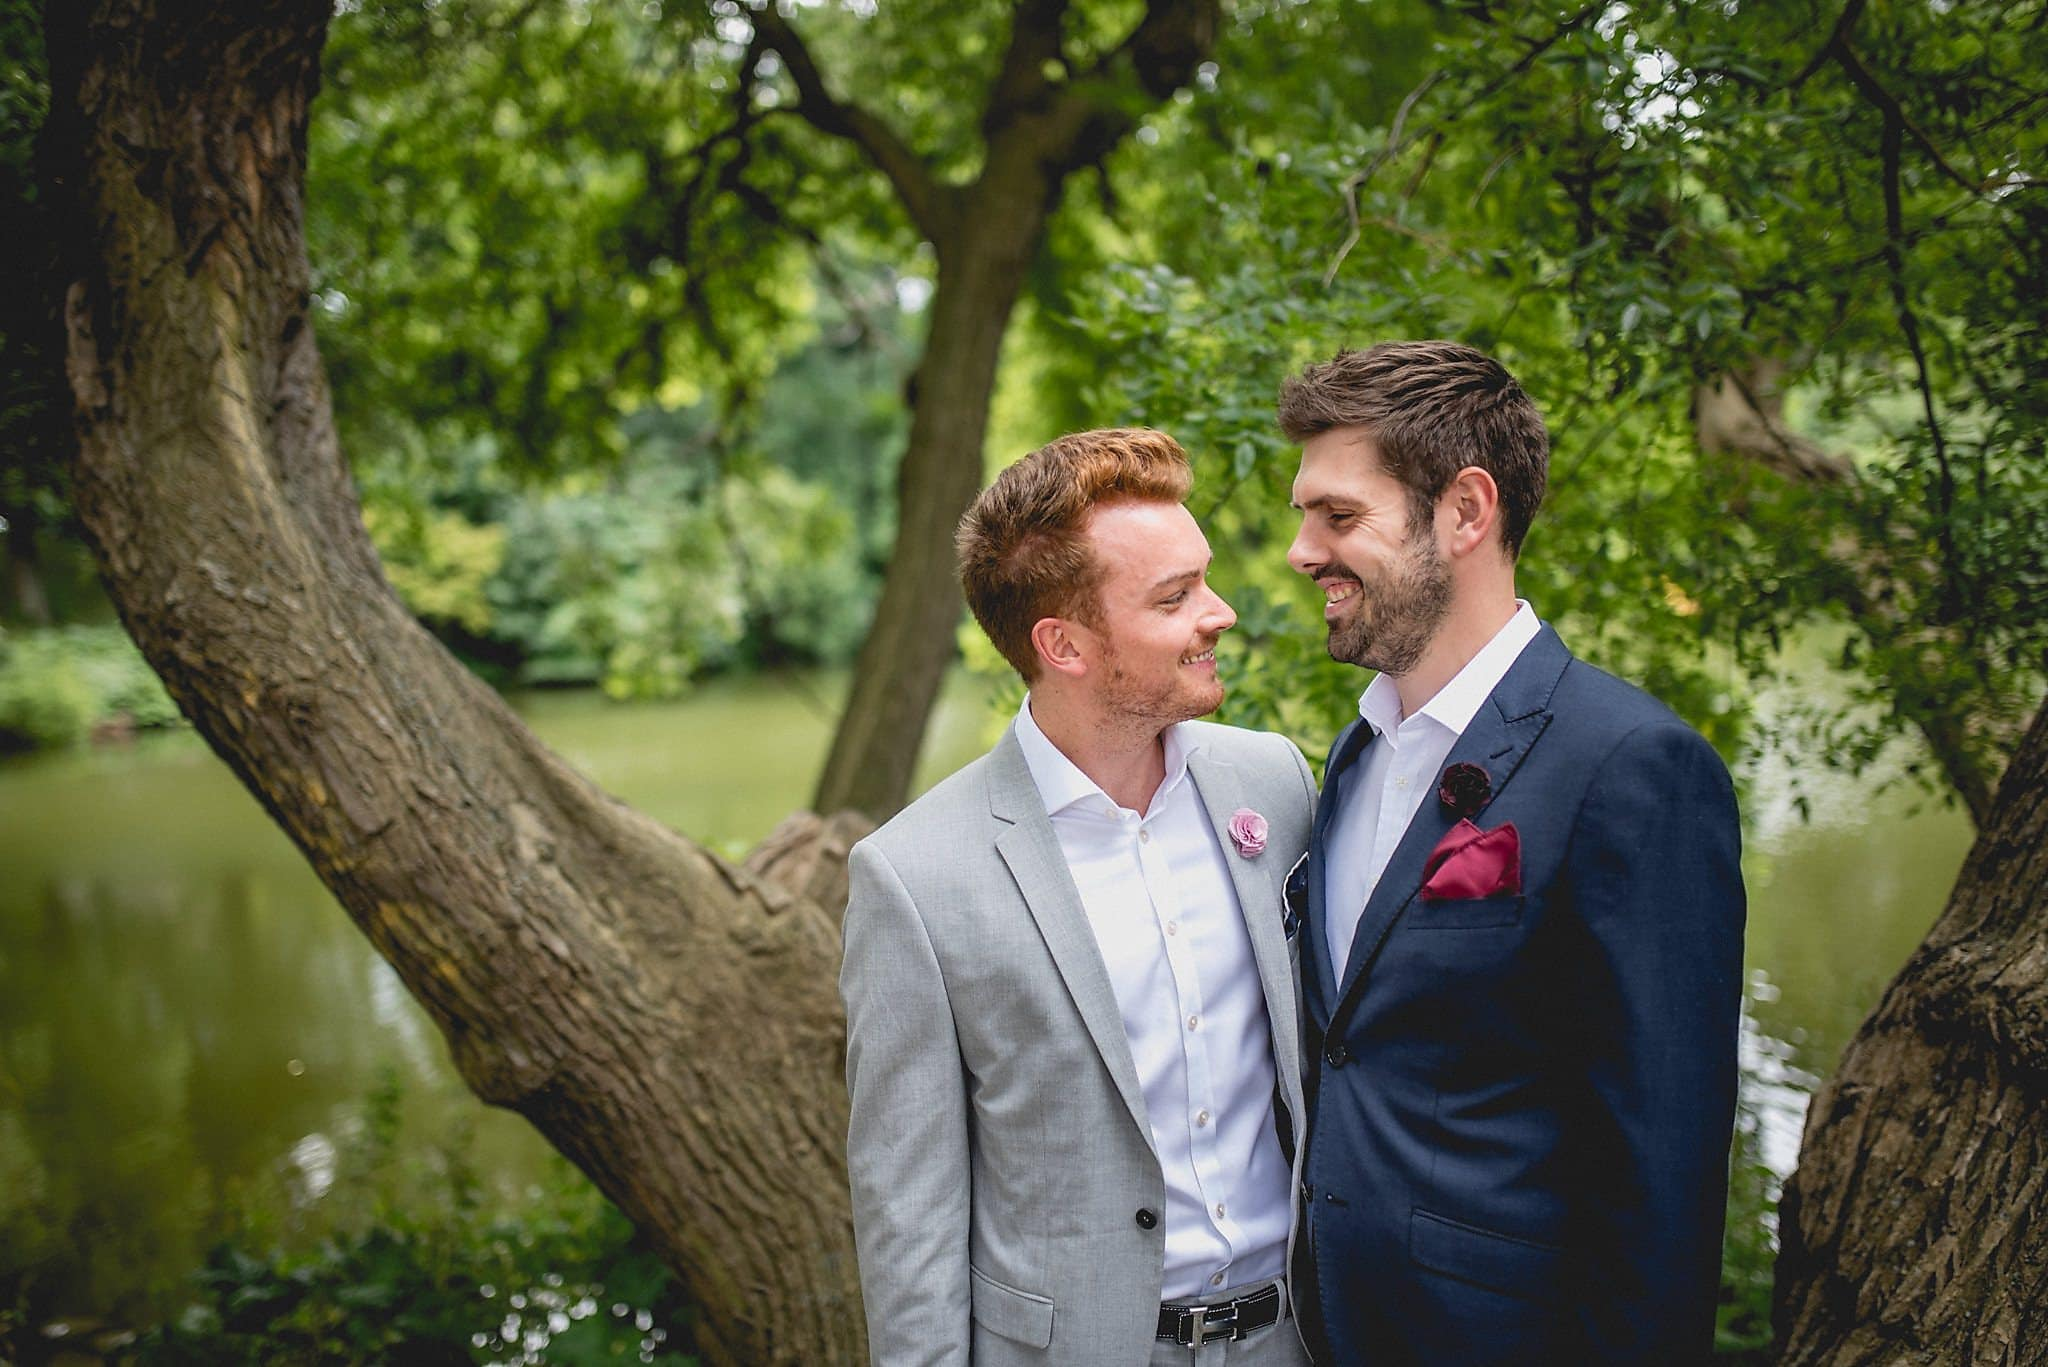 Two grooms smile together during their Copenhagen elopement